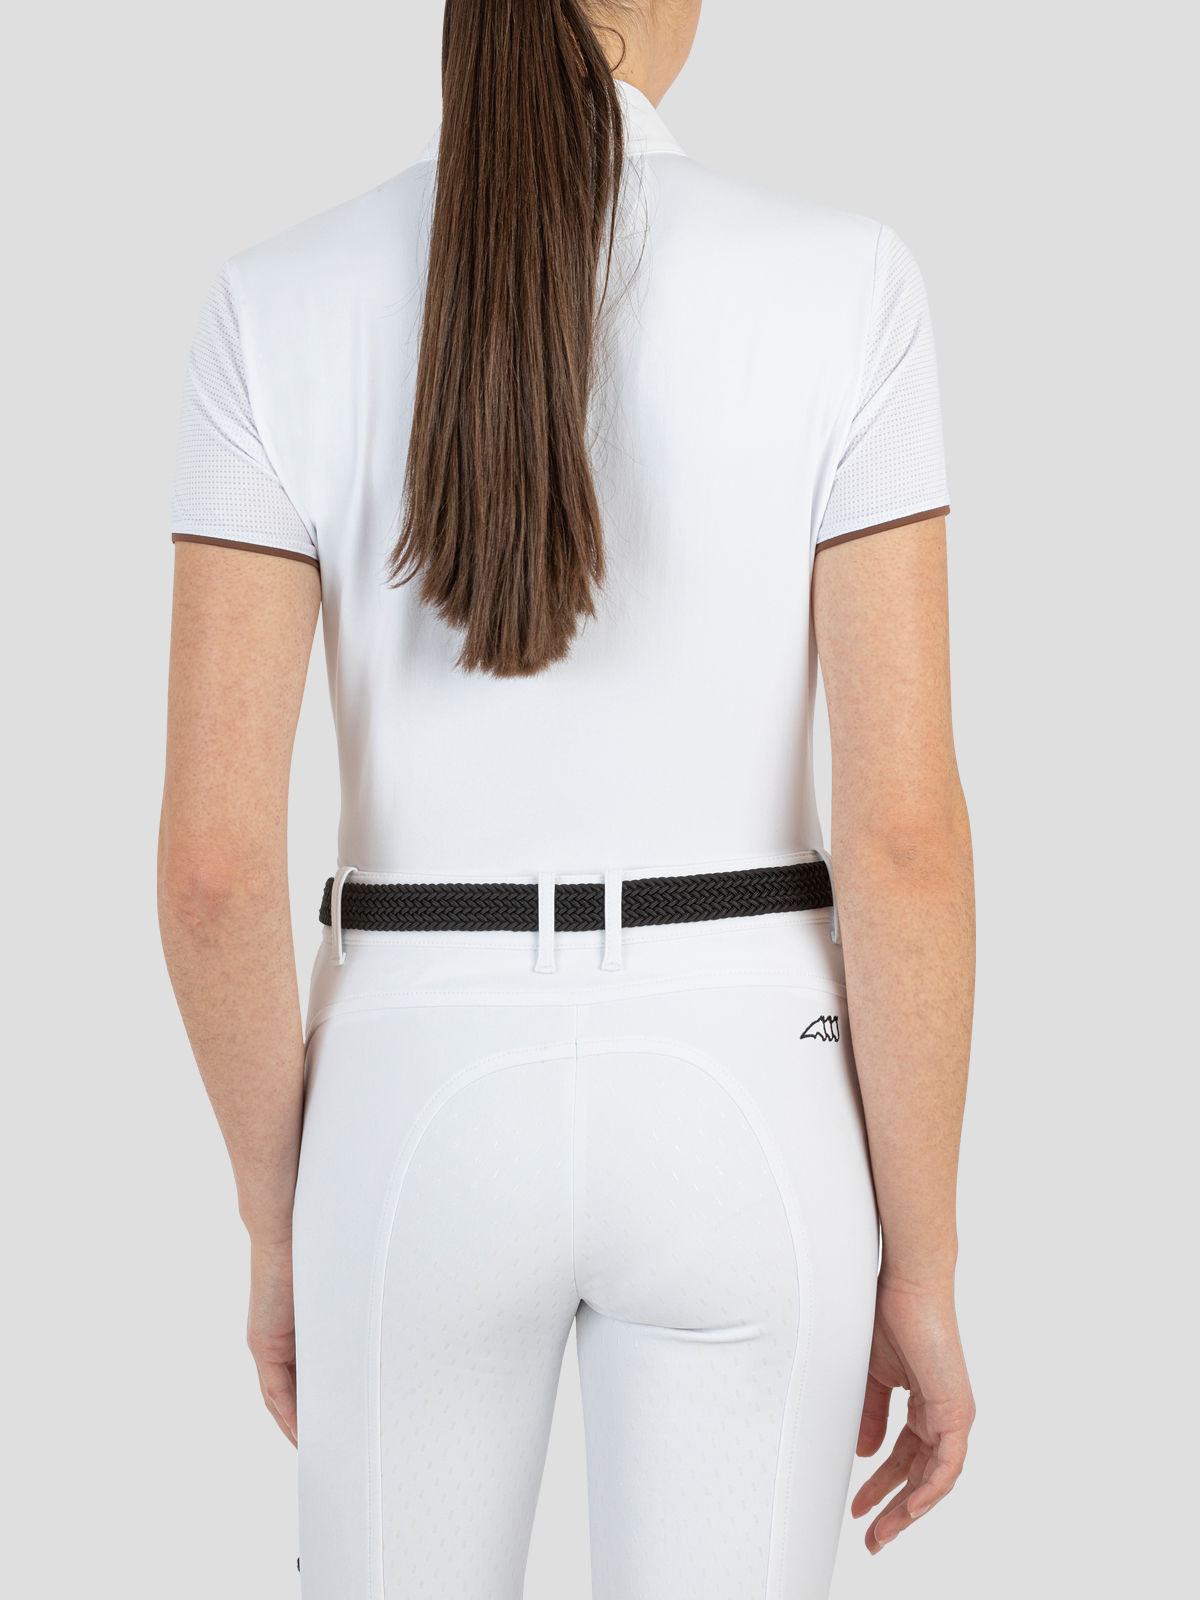 CORDA C WOMEN'S SHOW SHIRT WITH SHORT SLEEVES AND ZIP 3